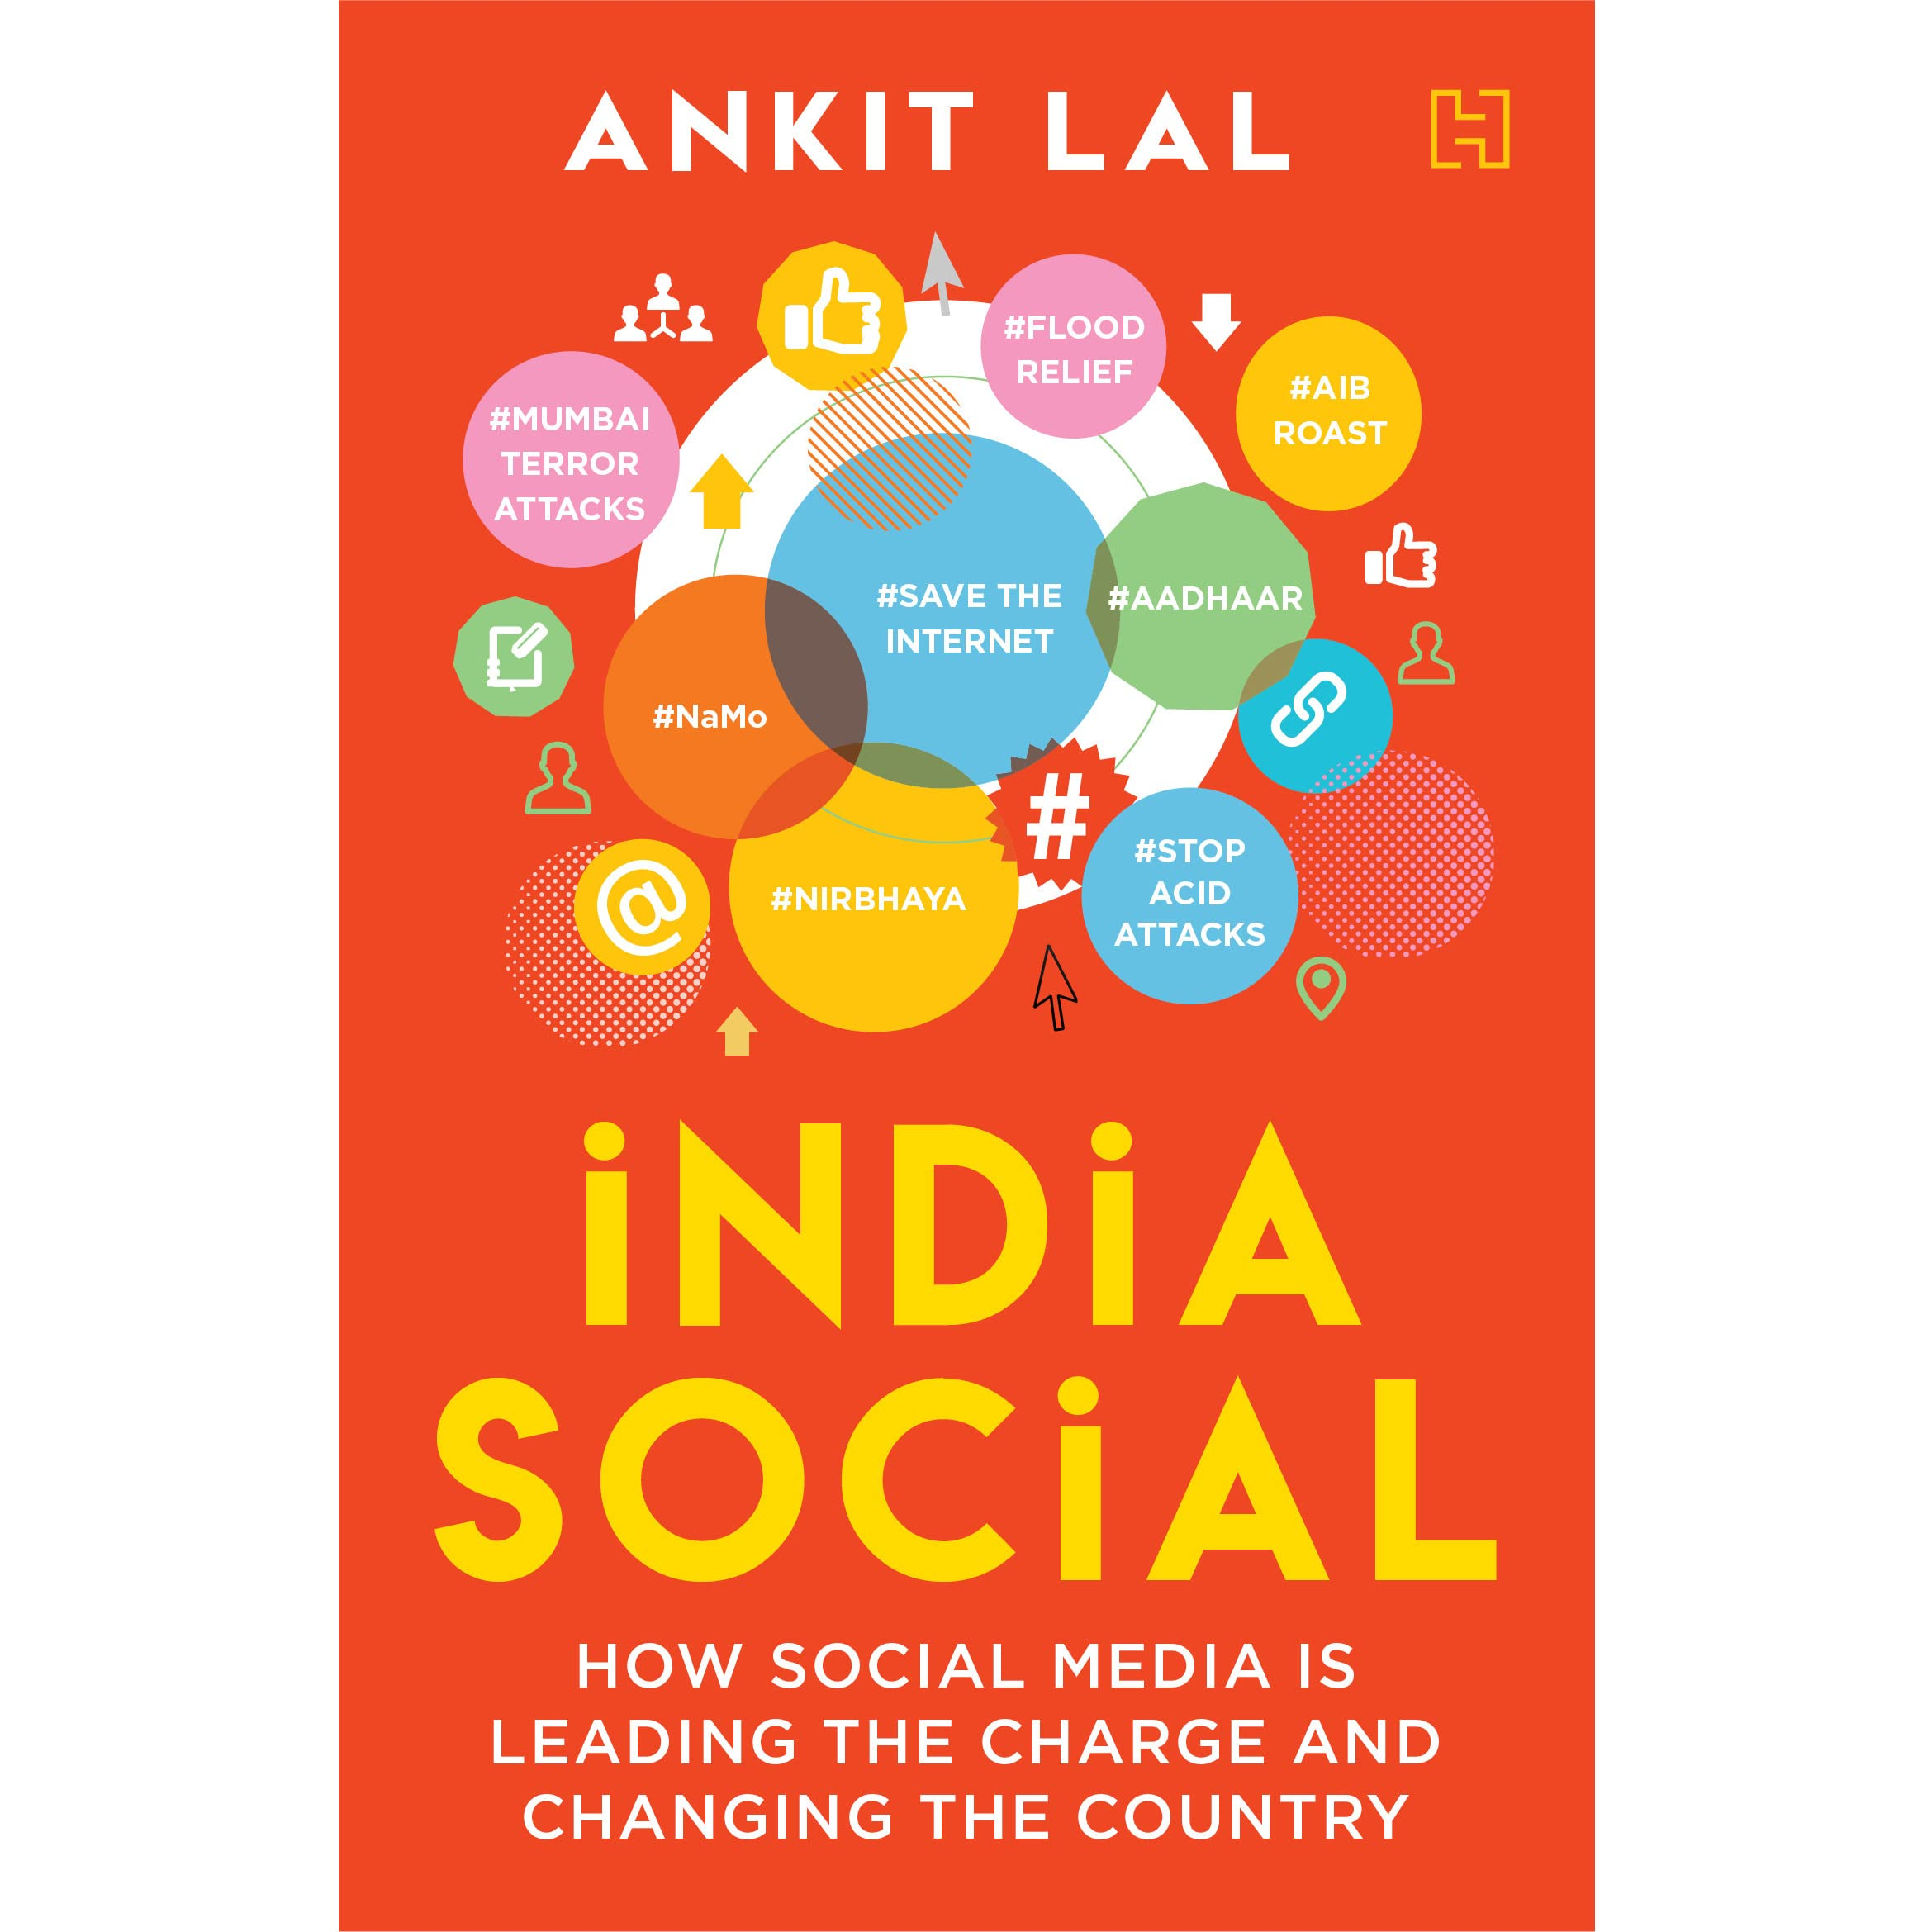 India Social: How Social Media Is Leading The Charge And